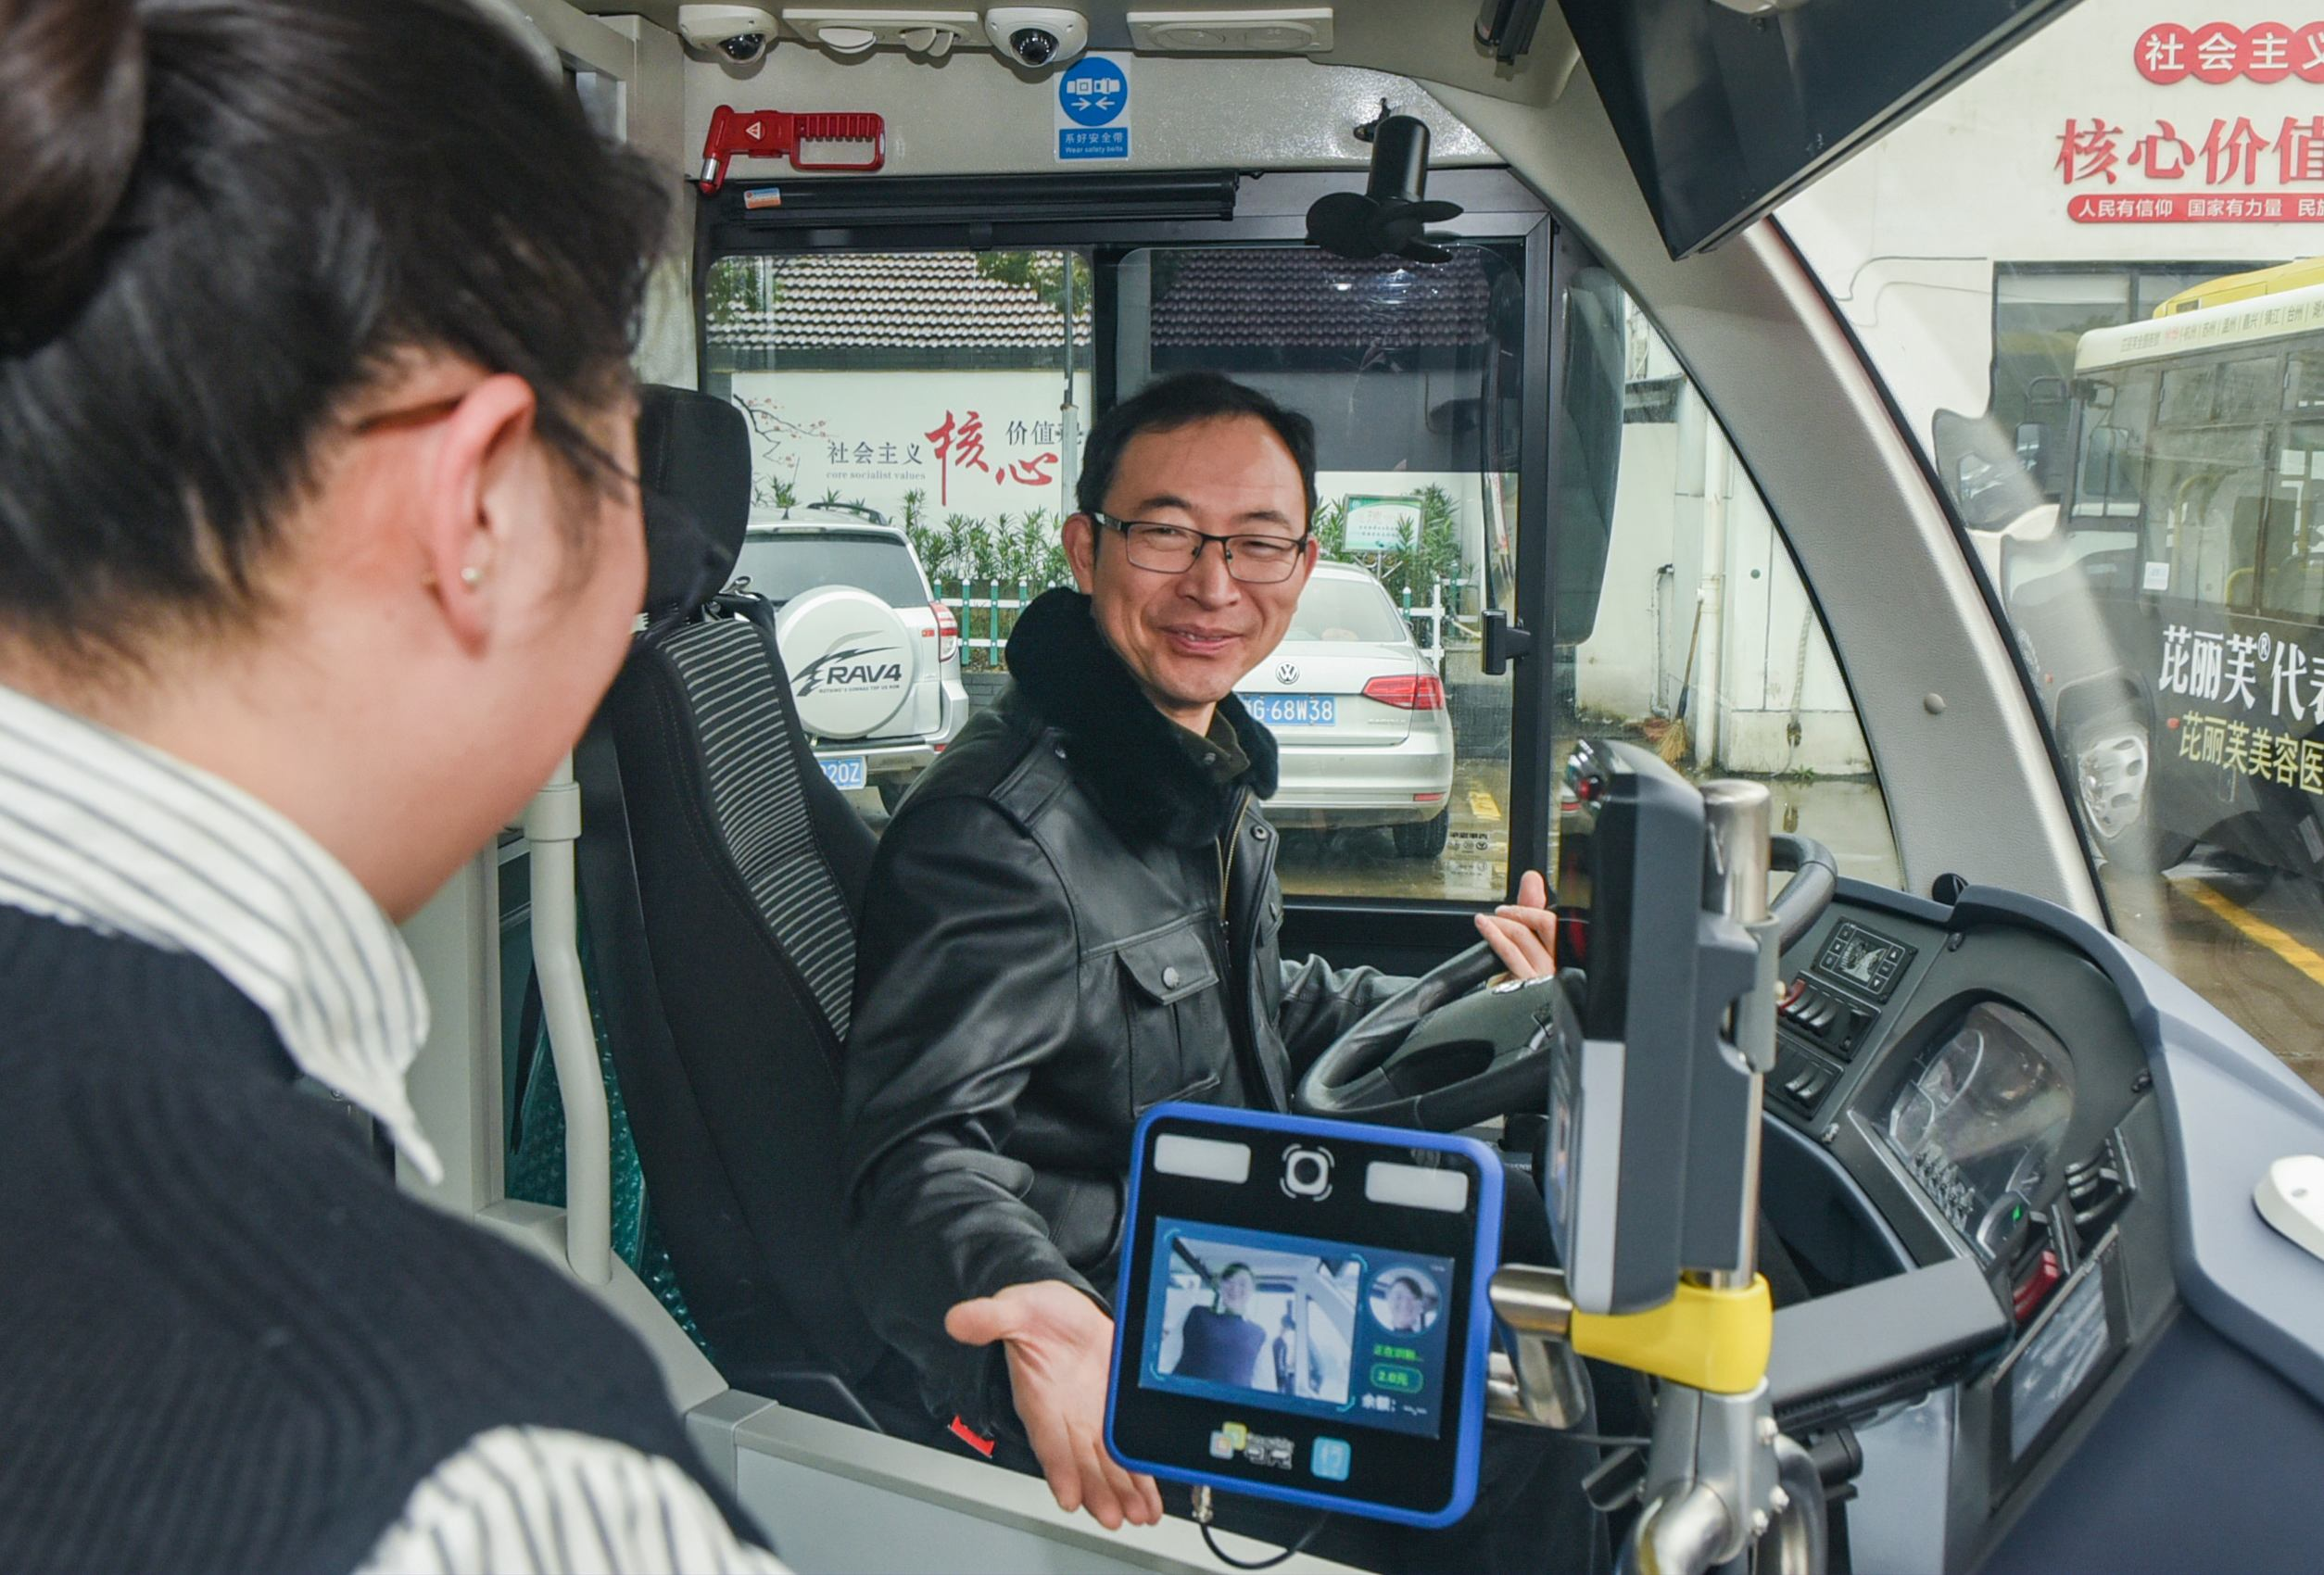 The bus diver looks as a passenger scans her face to pay her fare onboard a bus in Jinhua, Zhejiang Province, January 7, 2019. [Photo: IC]